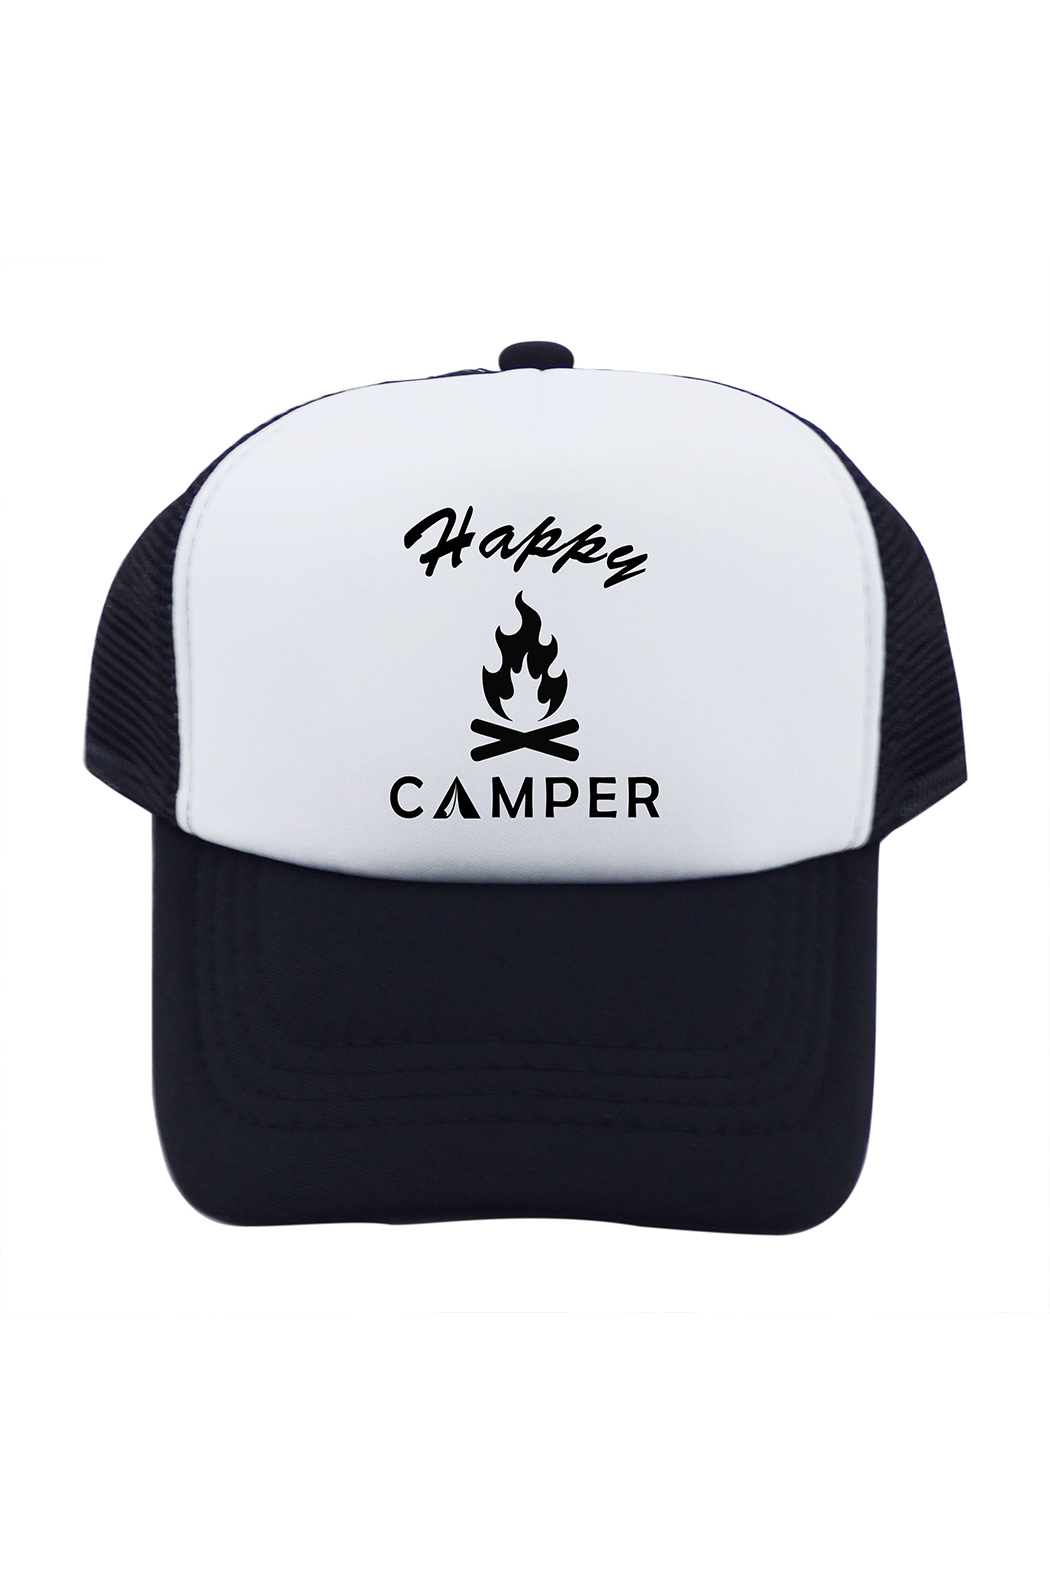 Outdoorable Apparel Happy Camper Hat - Black - Main Image